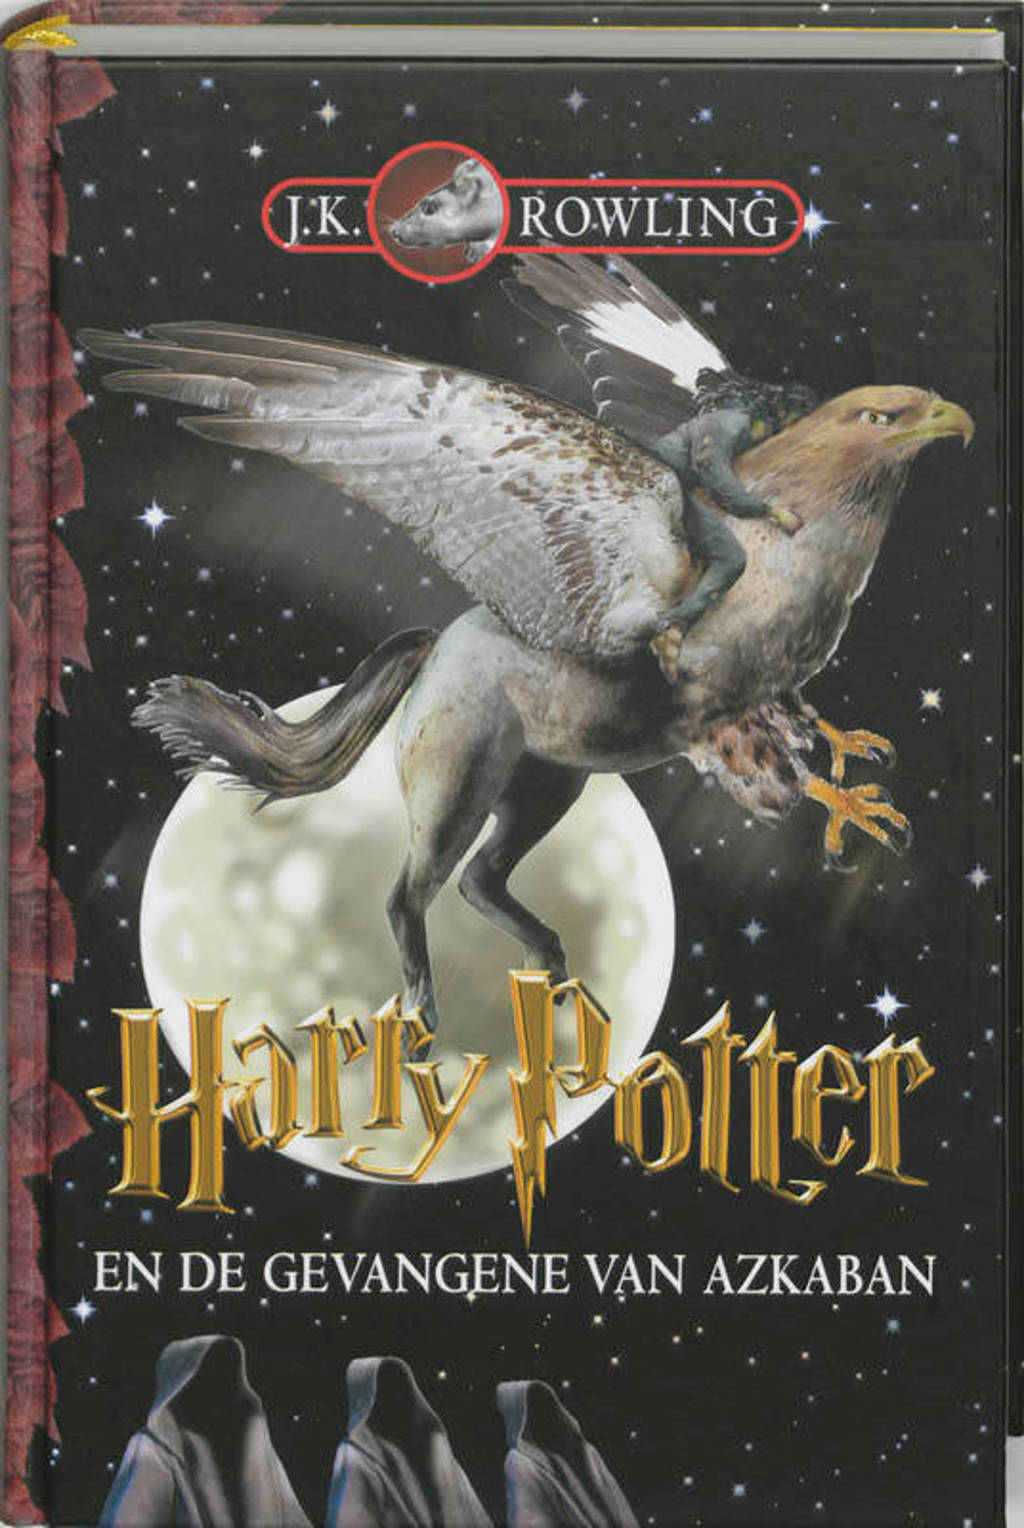 Harry Potter: Harry Potter en de gevangene van Azkaban - J.K. Rowling